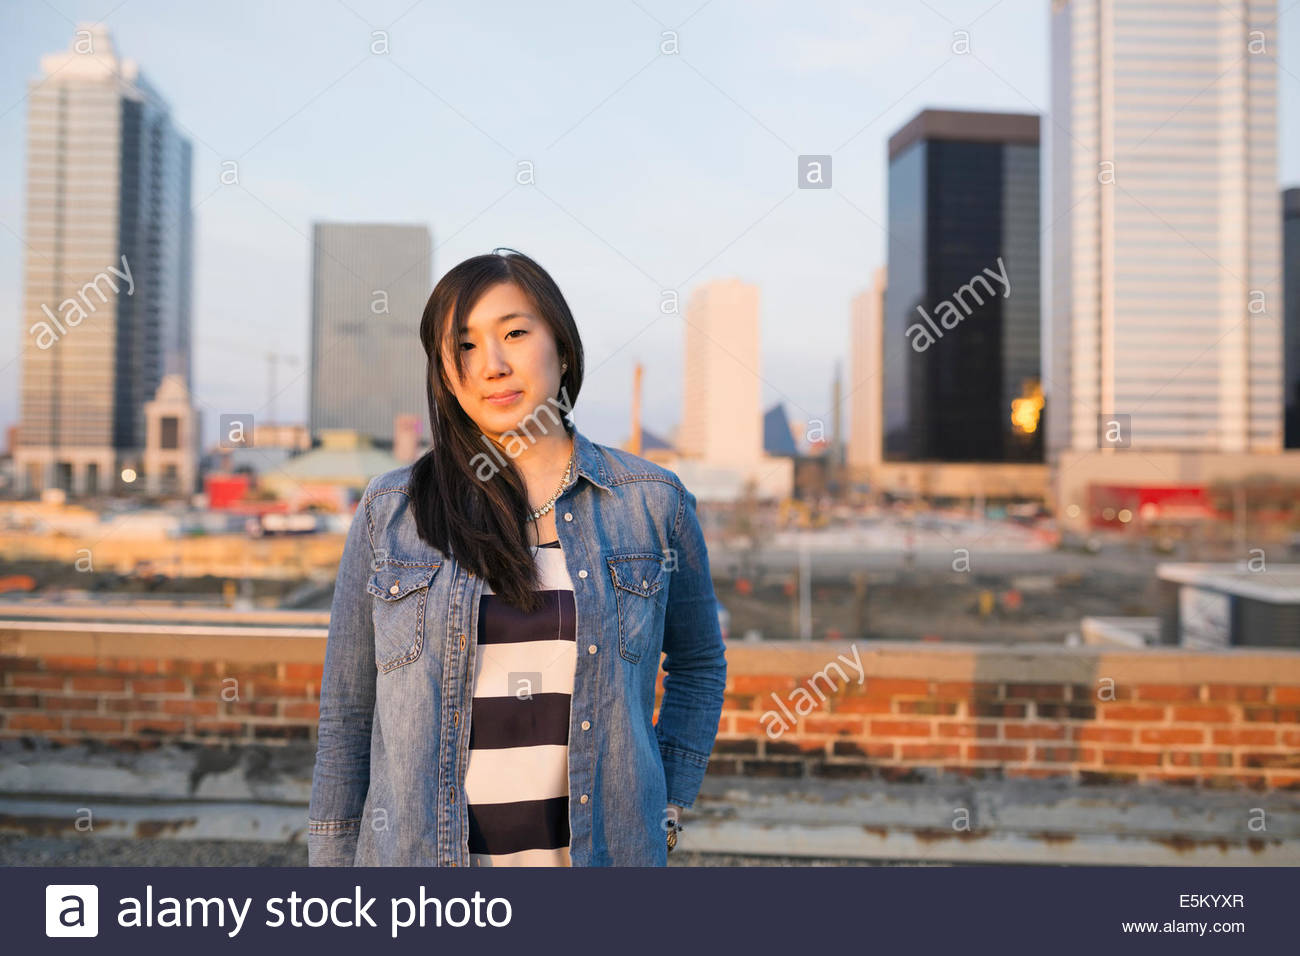 Portrait of woman on urban rooftop Photo Stock